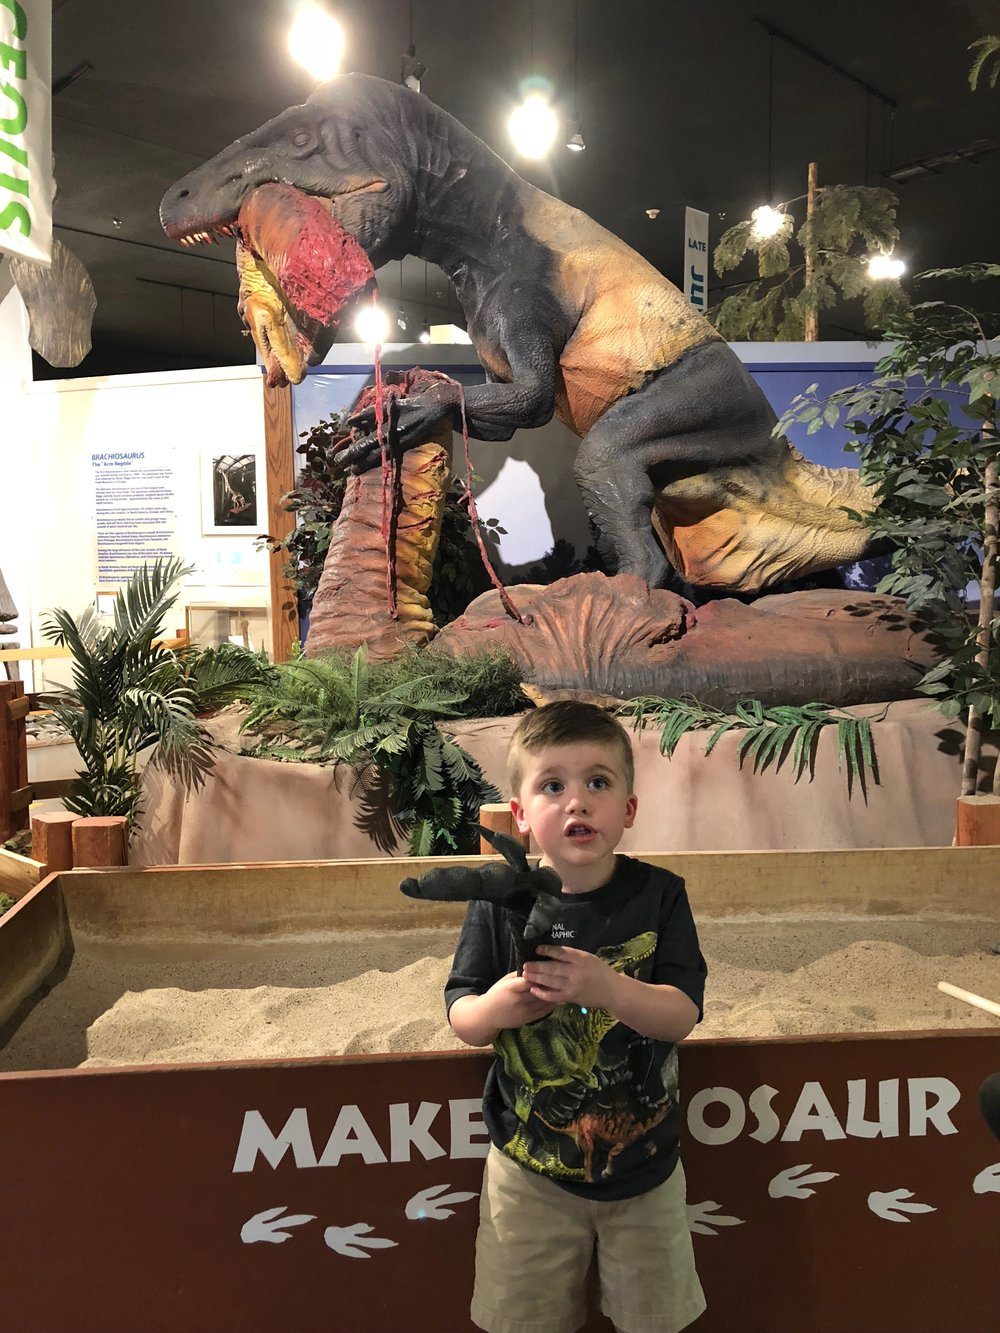 That dinosaur behind him is completely disgusting…